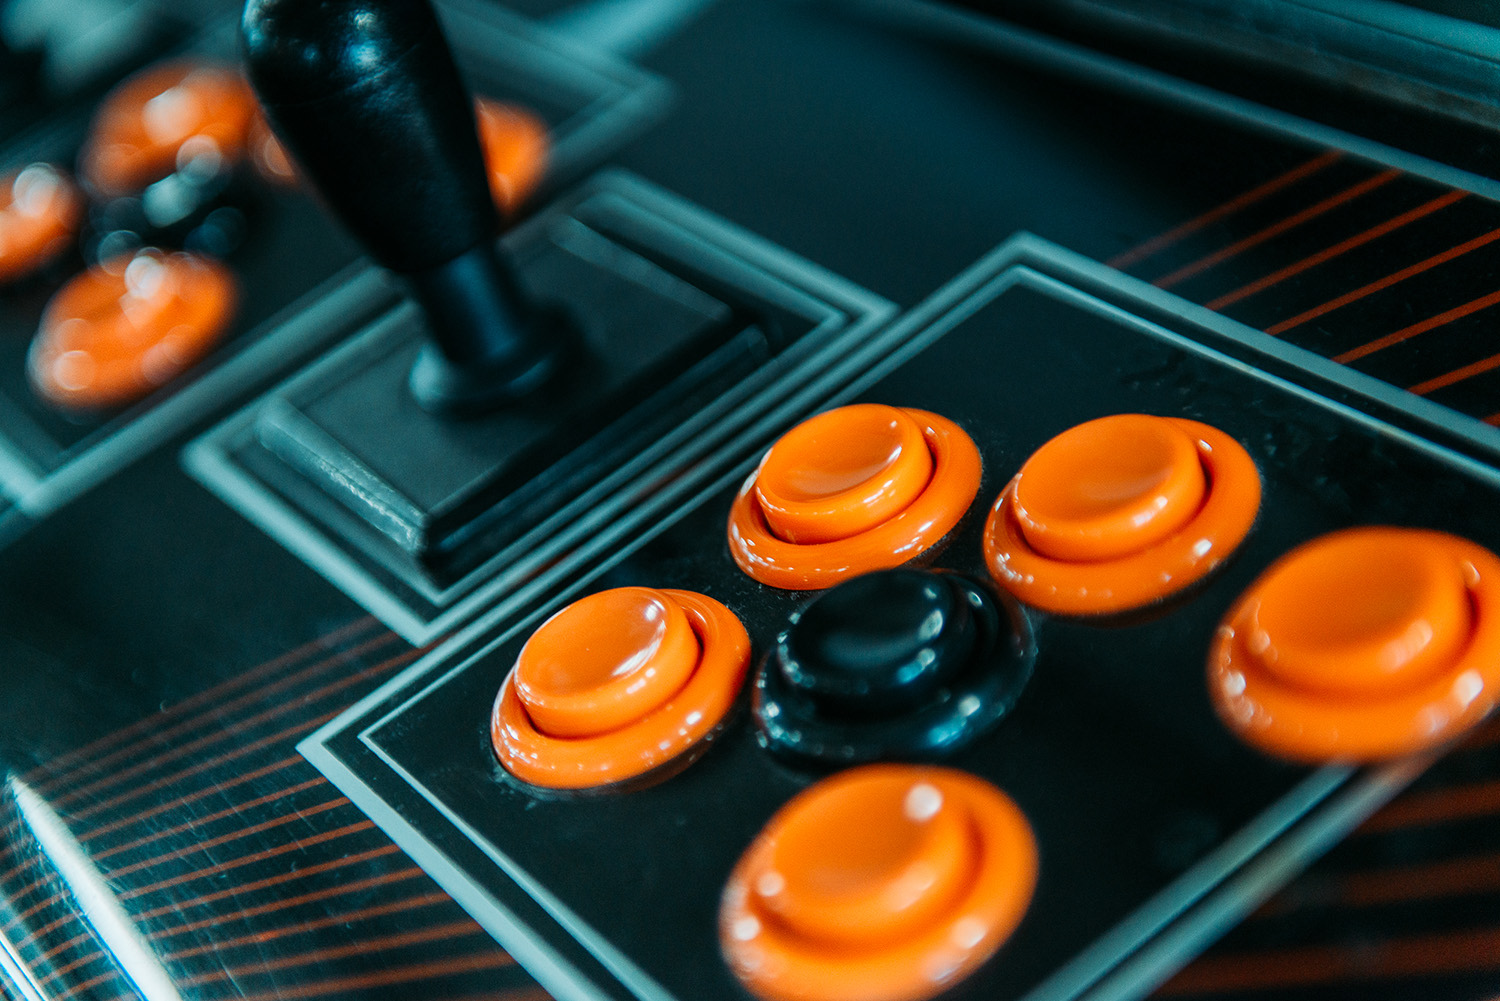 arcade-old-school-game-controller-bimodal-IT